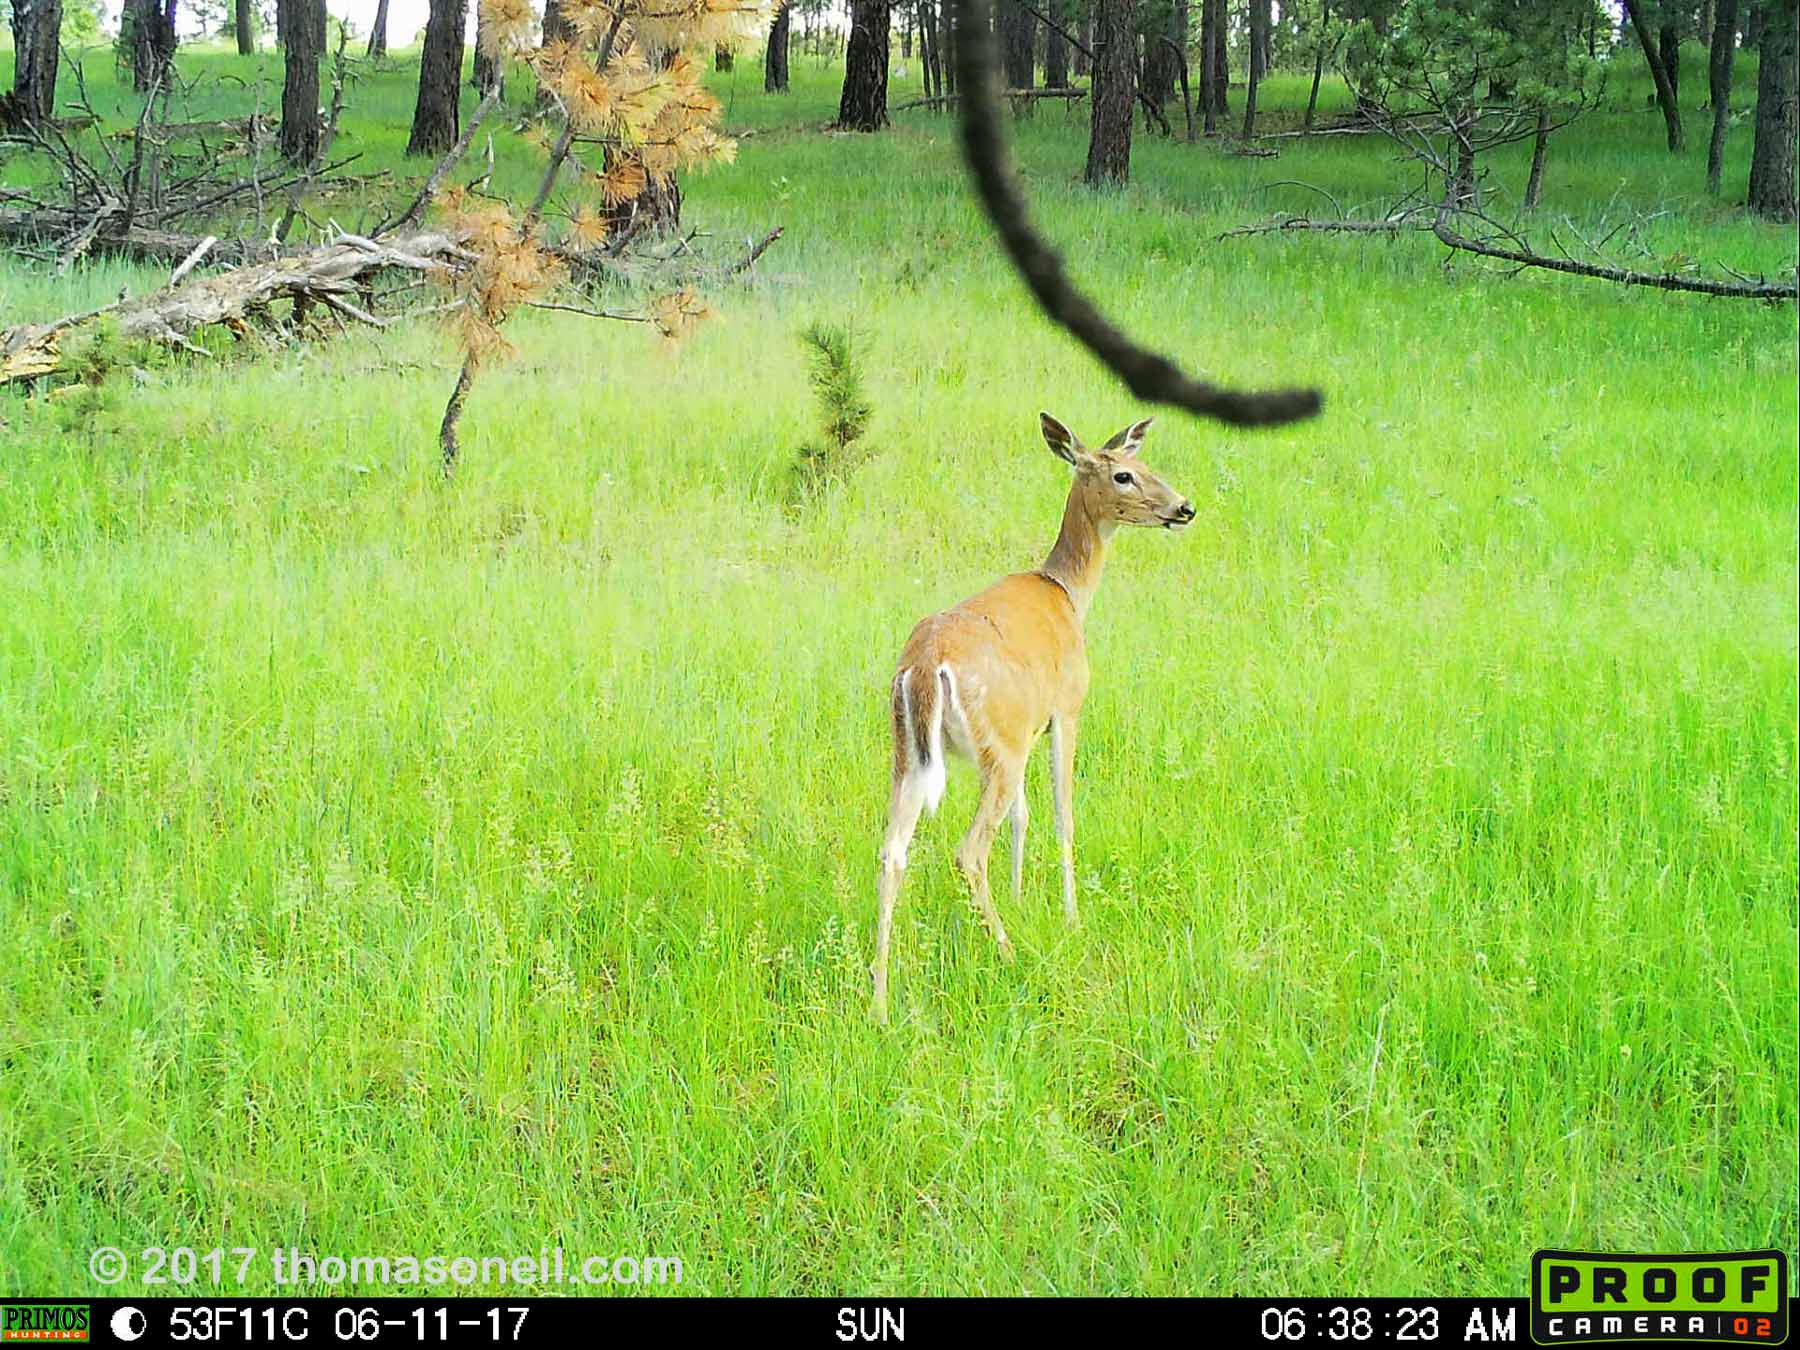 Deer, June 11, 2017.  This is probably the best image I can get from the Primos trailcam, but I'm going to try something else.  Click for next photo.